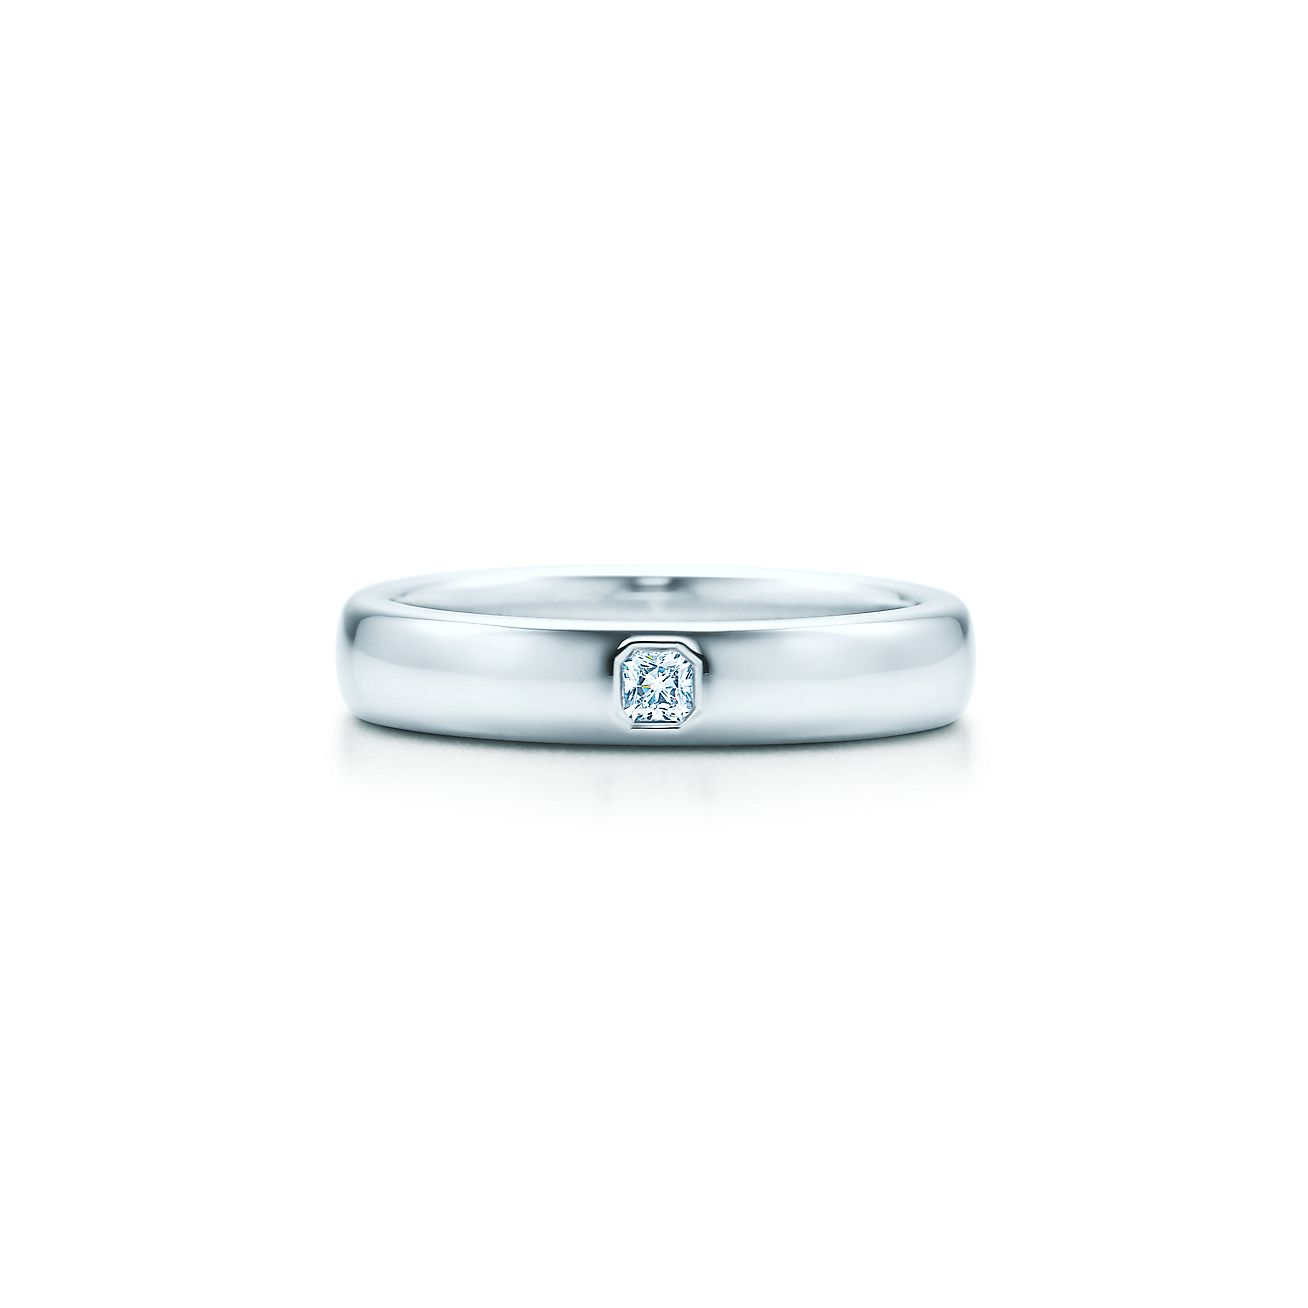 Tiffany classic wedding band ring in platinum with a diamond 4 mm tiffany classicwedding band ring junglespirit Gallery